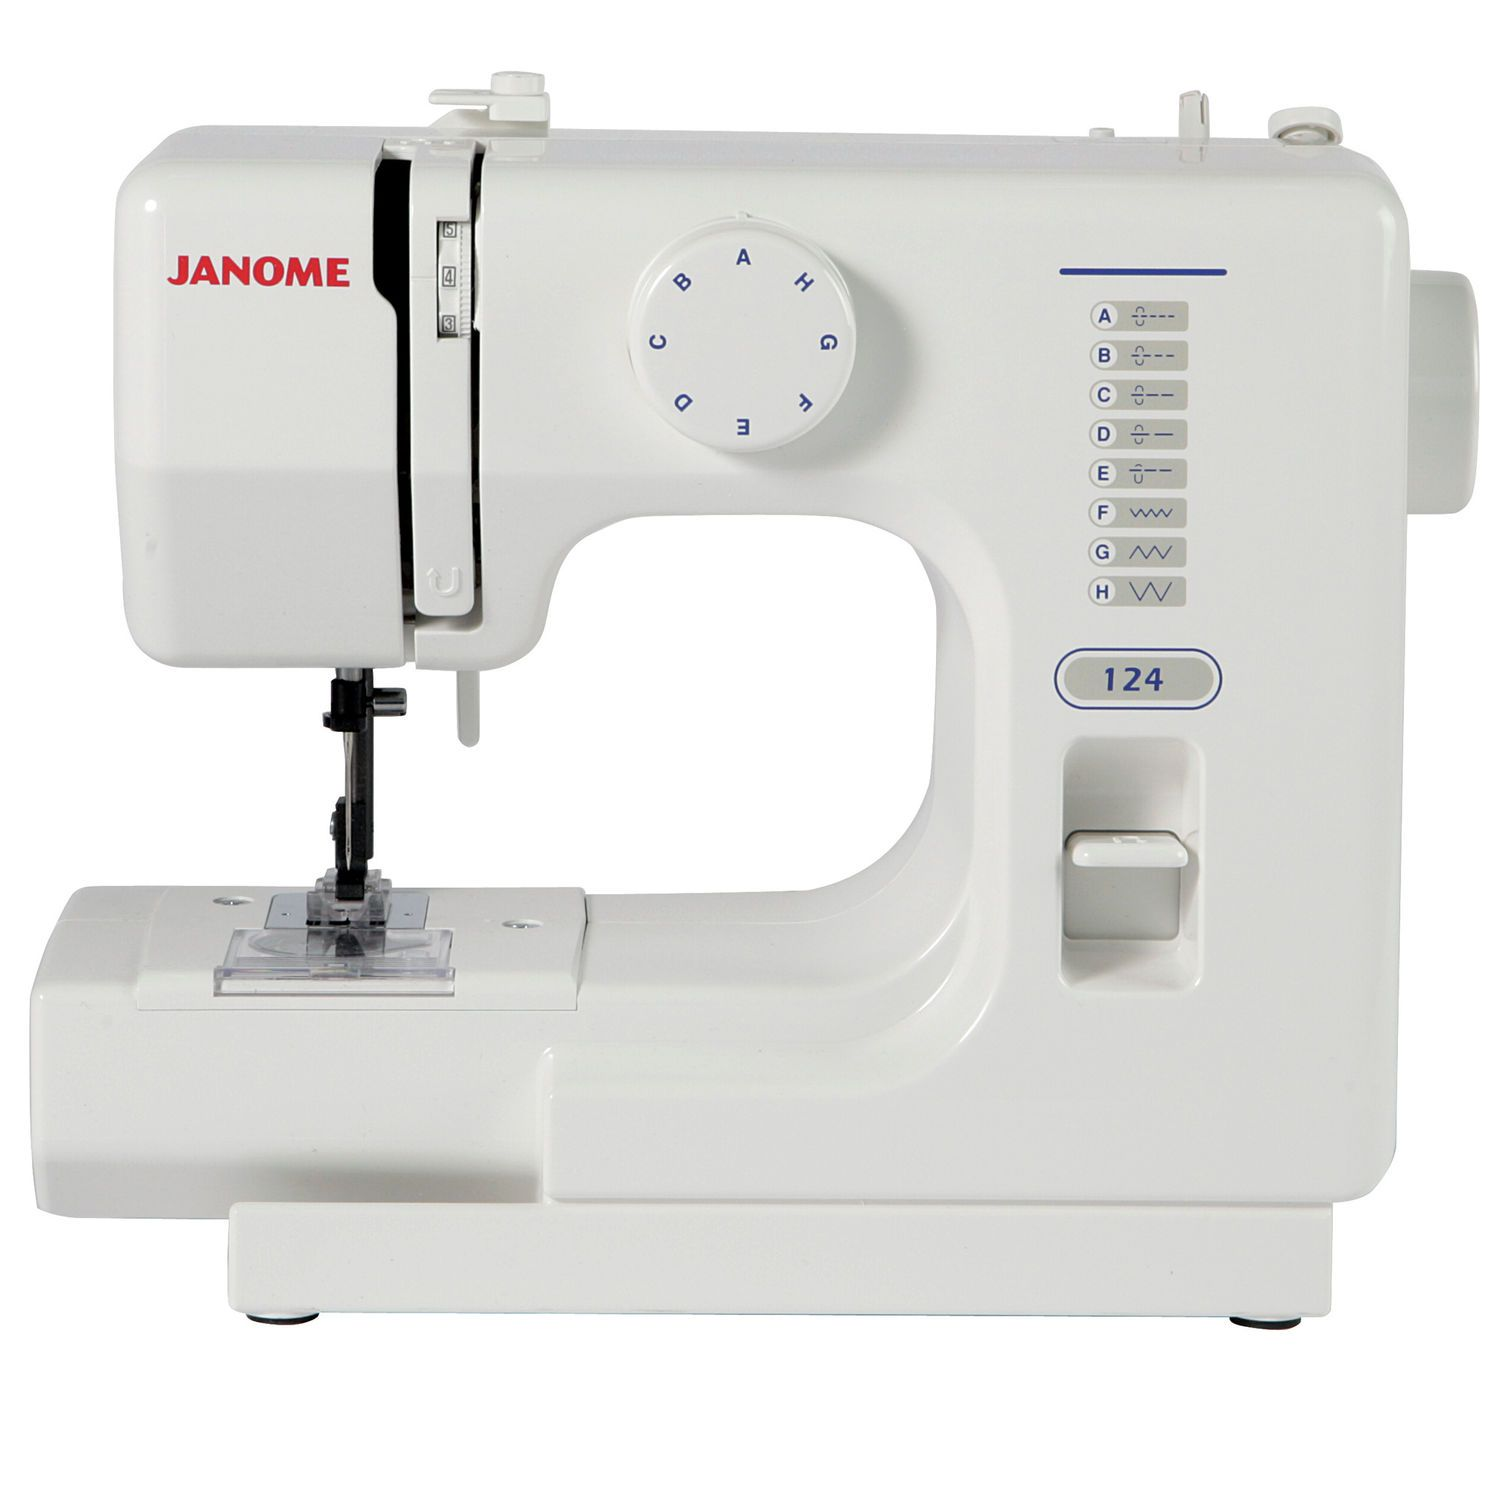 qvc page janome quilting machine product quilt com memory craft sewing